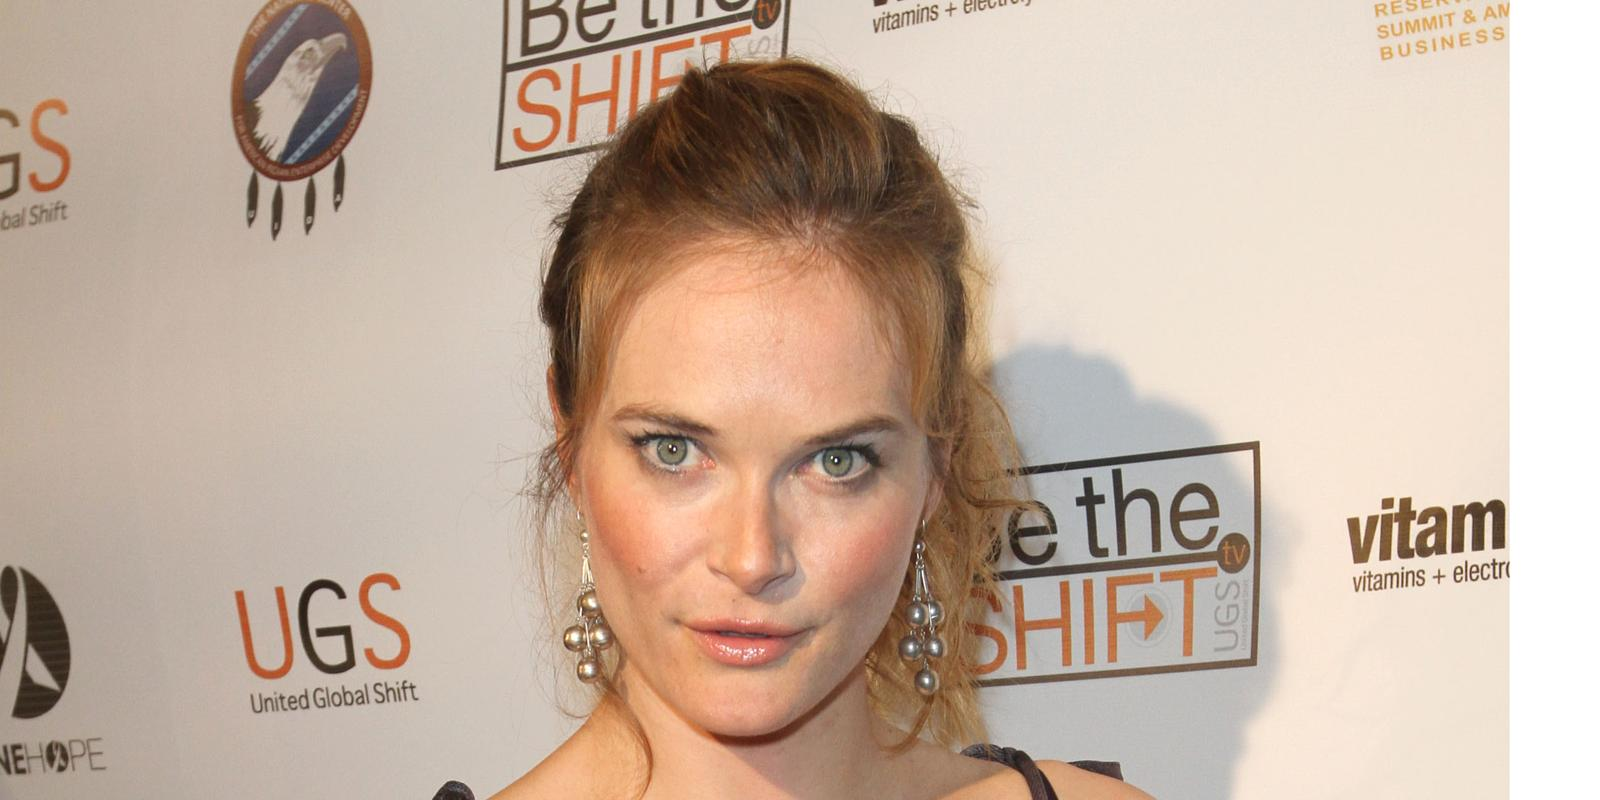 rachel blanchard peep showrachel blanchard net worth, rachel blanchard fargo, rachel blanchard, rachel blanchard imdb, rachel blanchard instagram, rachel blanchard wiki, rachel blanchard married, rachel blanchard twitter, rachel blanchard alicia silverstone, rachel blanchard nudography, rachel blanchard photography, rachel blanchard peep show